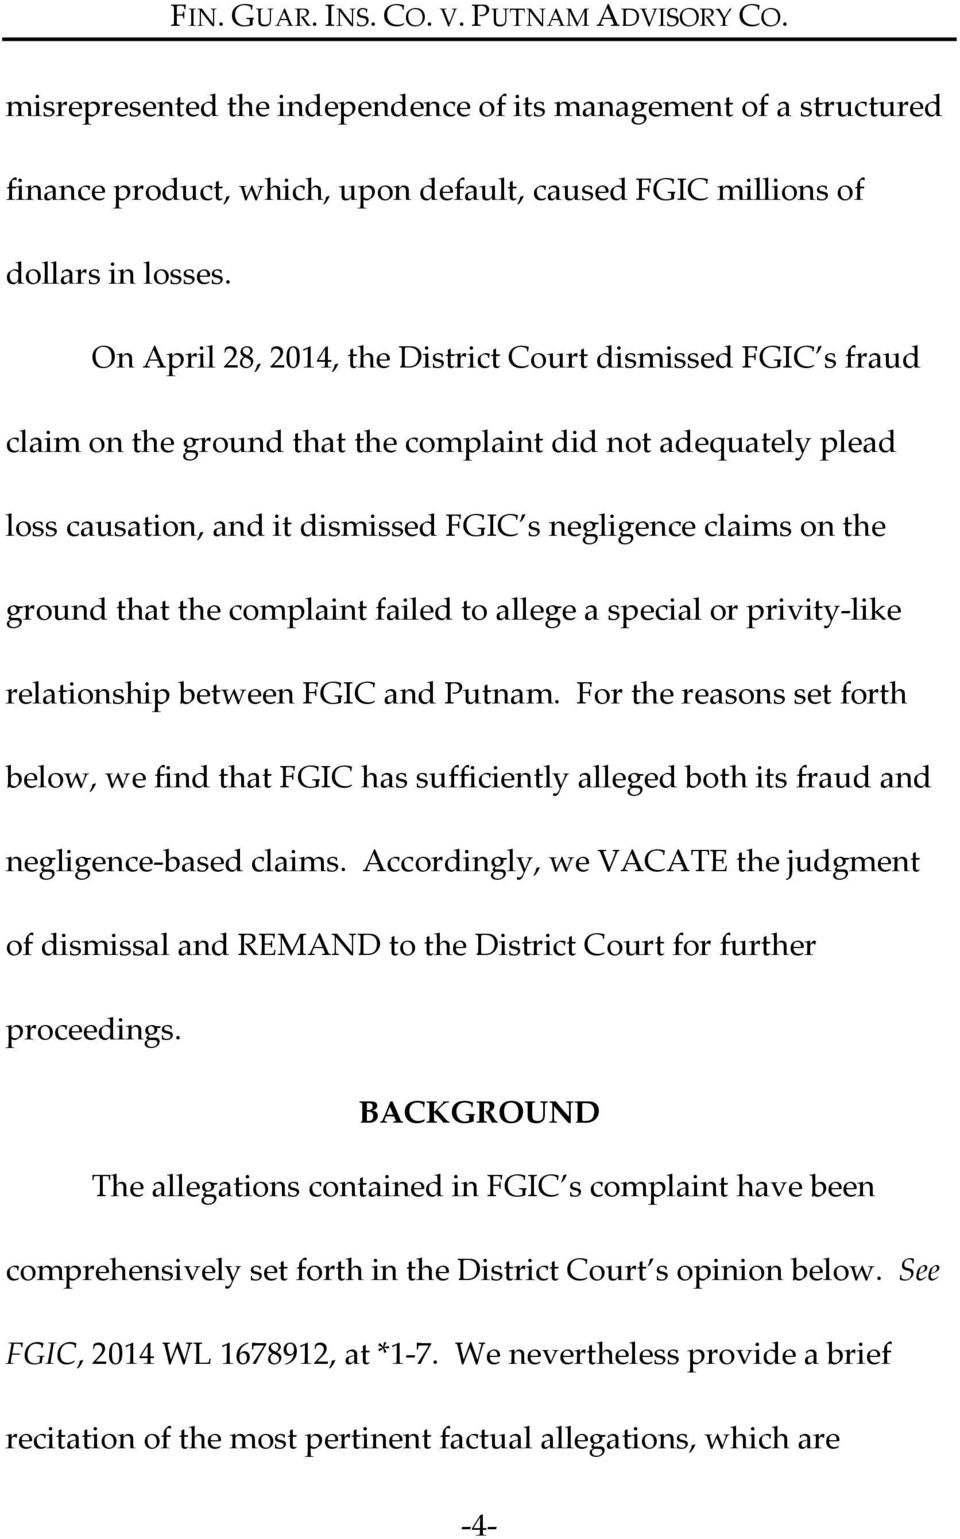 that the complaint failed to allege a special or privity like relationship between FGIC and Putnam.